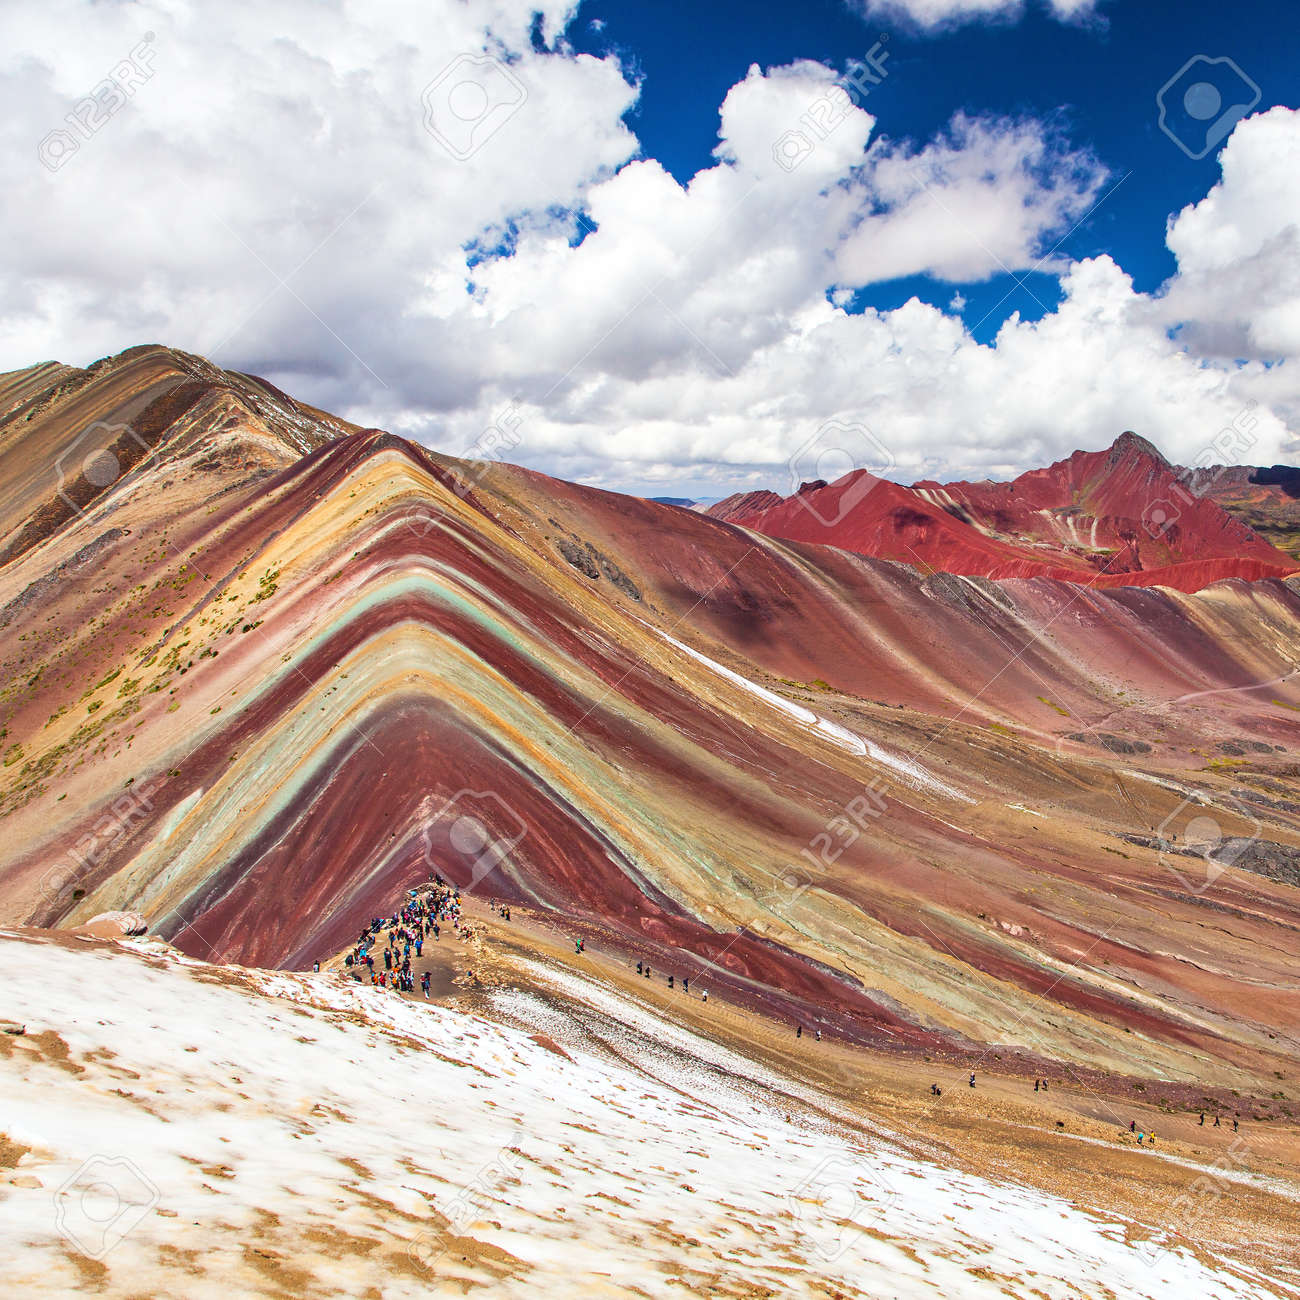 Rainbow mountains or Vinicunca Montana de Siete Colores with people, Cuzco region in Peru, Peruvian Andes, panoramic view - 158475321